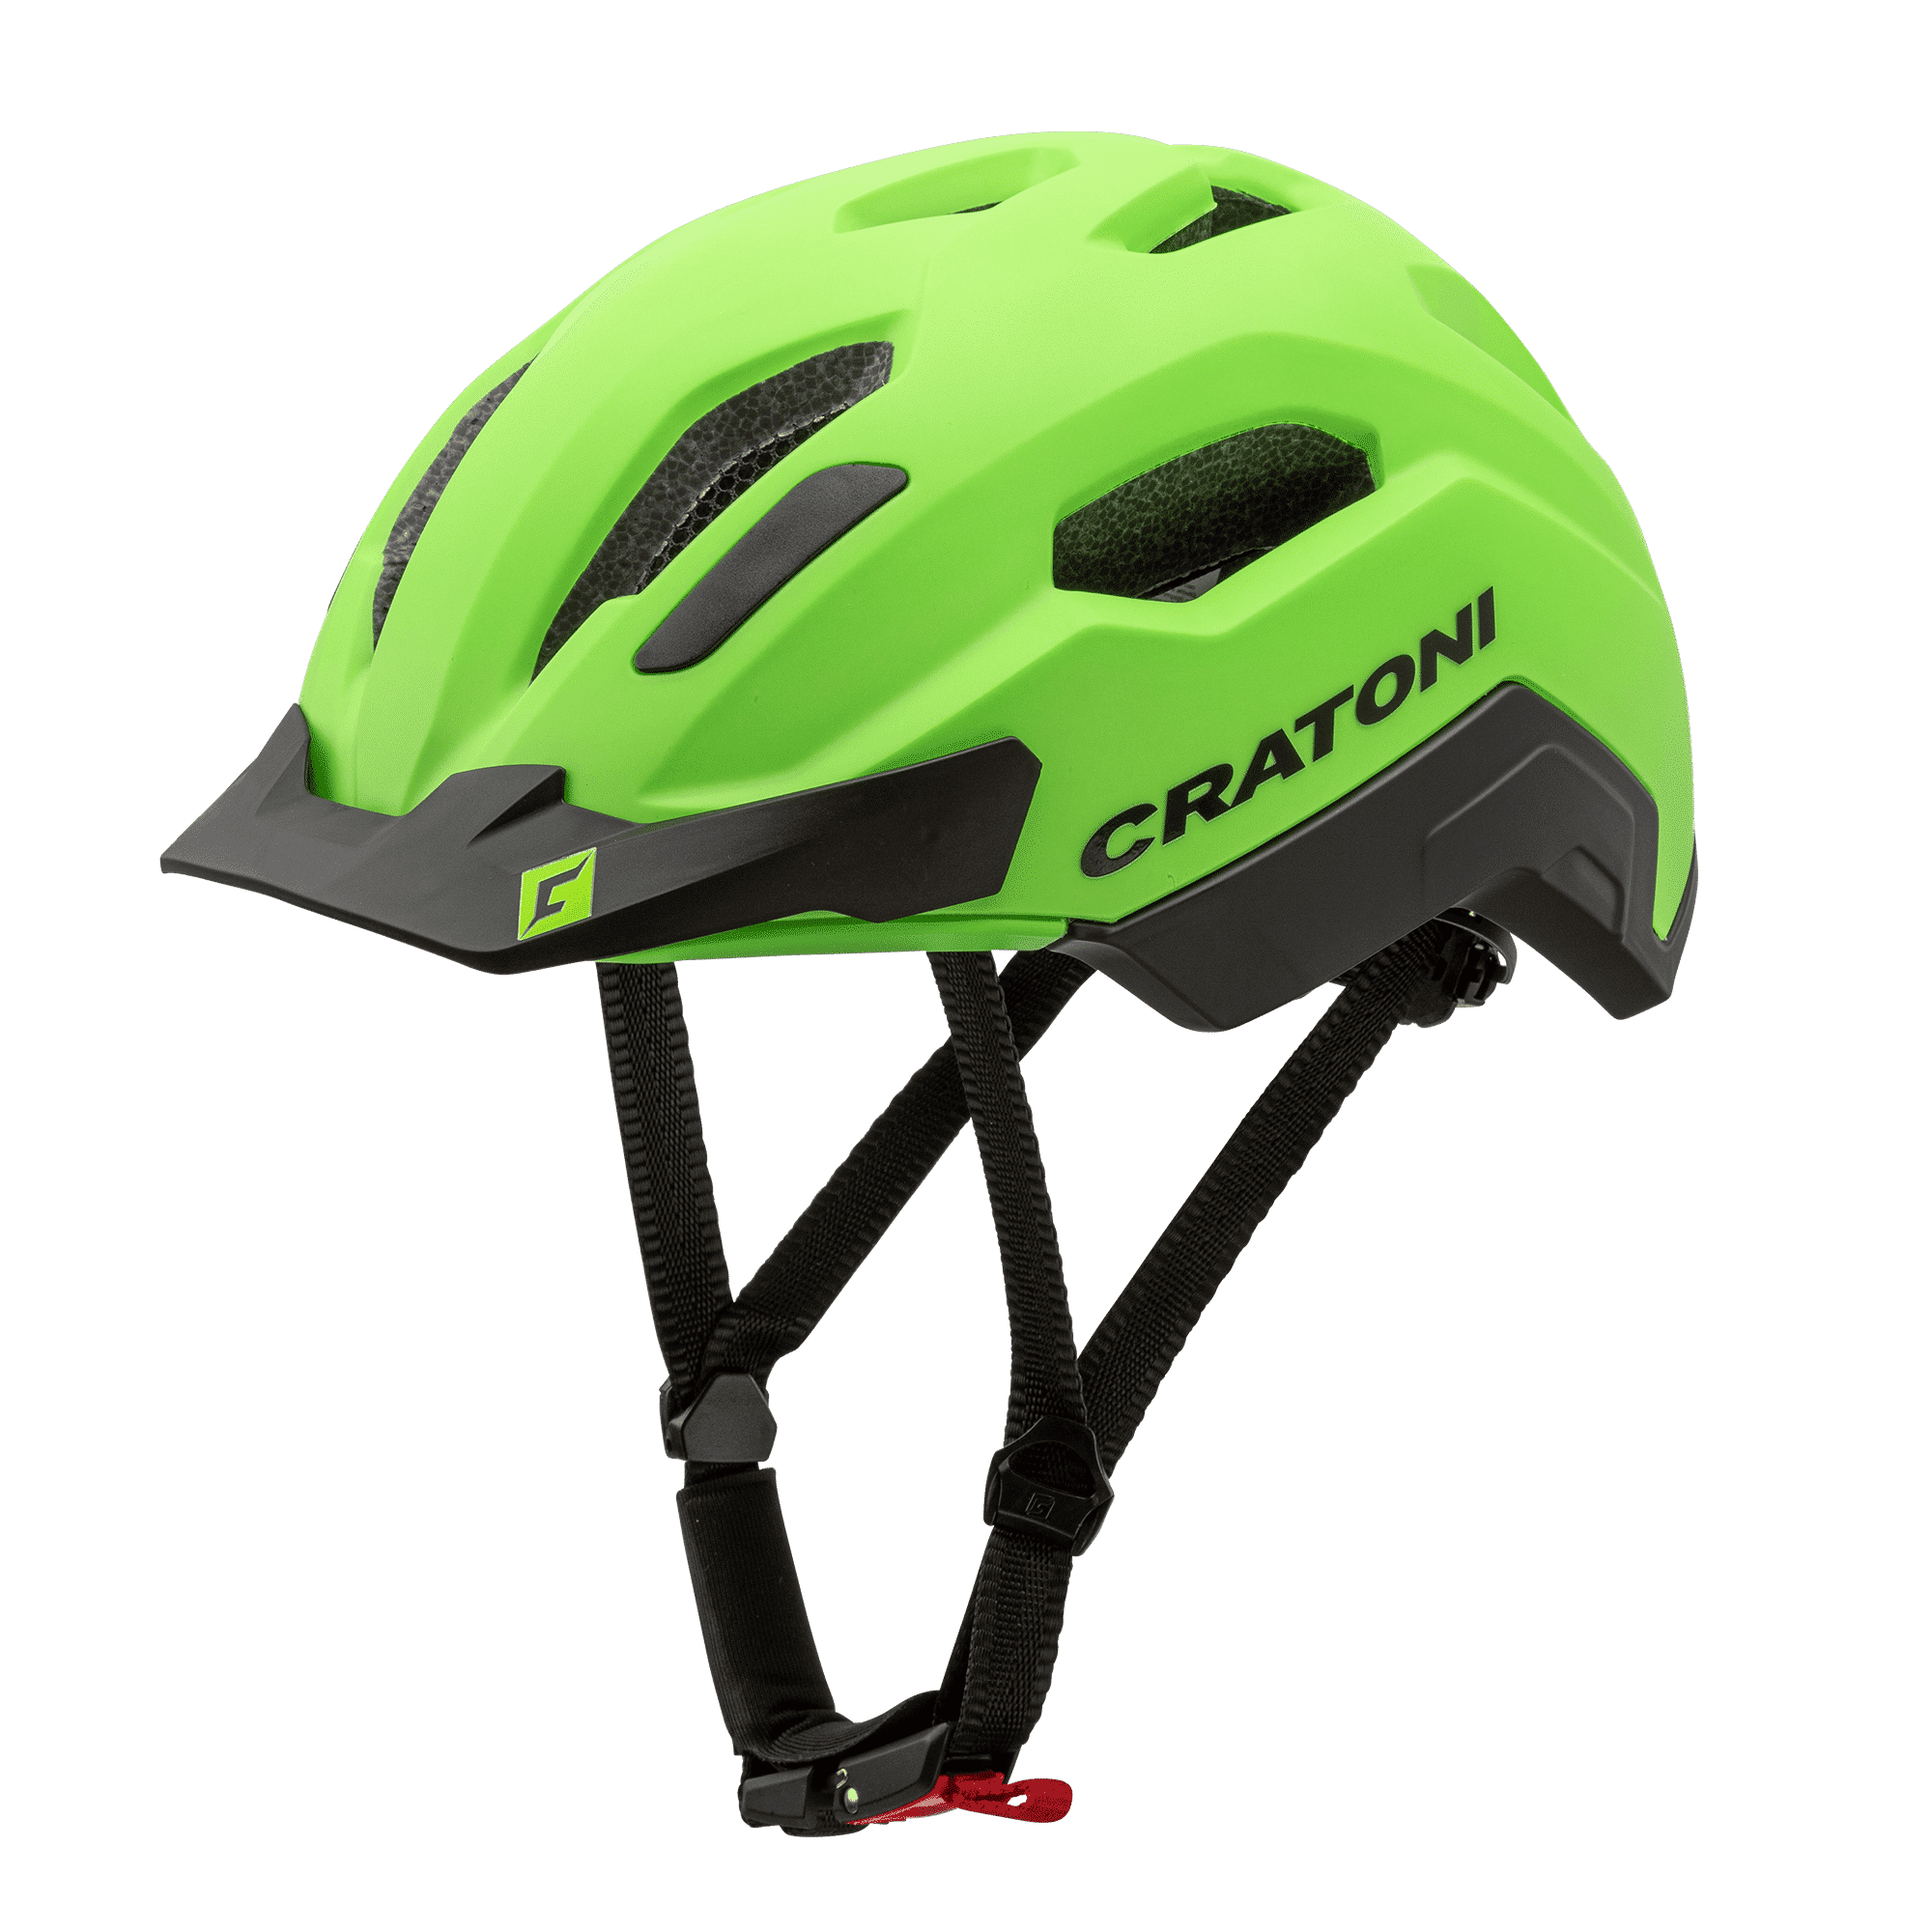 C-Classic Neongreen-Black Matt